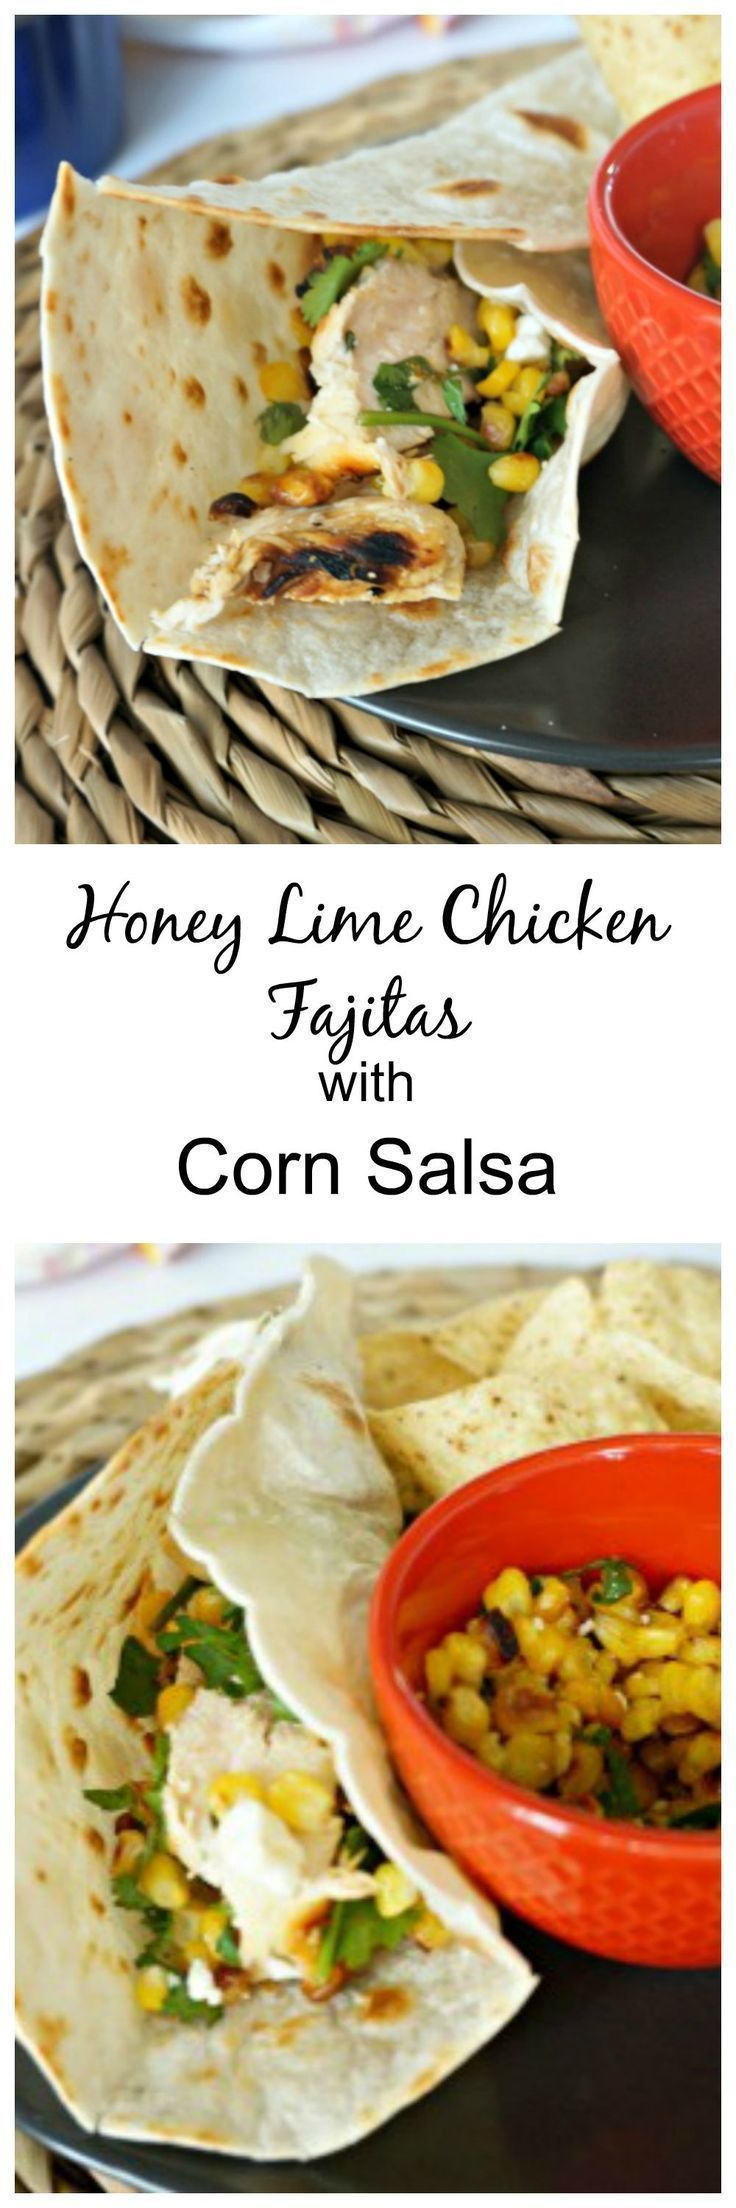 Get the party started with this recipe for Honey Lime Chicken Fajitas.  Grilled ... - #bbqgrillchicken #grillchickenhealthy #grillchickenmeals #grillchickenpasta #grillchickensandwich #grillchickensides #mexicangrillchicken #honeylimechicken Get the party started with this recipe for Honey Lime Chicken Fajitas.  Grilled ... - #bbqgrillchicken #grillchickenhealthy #grillchickenmeals #grillchickenpasta #grillchickensandwich #grillchickensides #mexicangrillchicken #honeylimechicken Get the party st #honeylimechicken